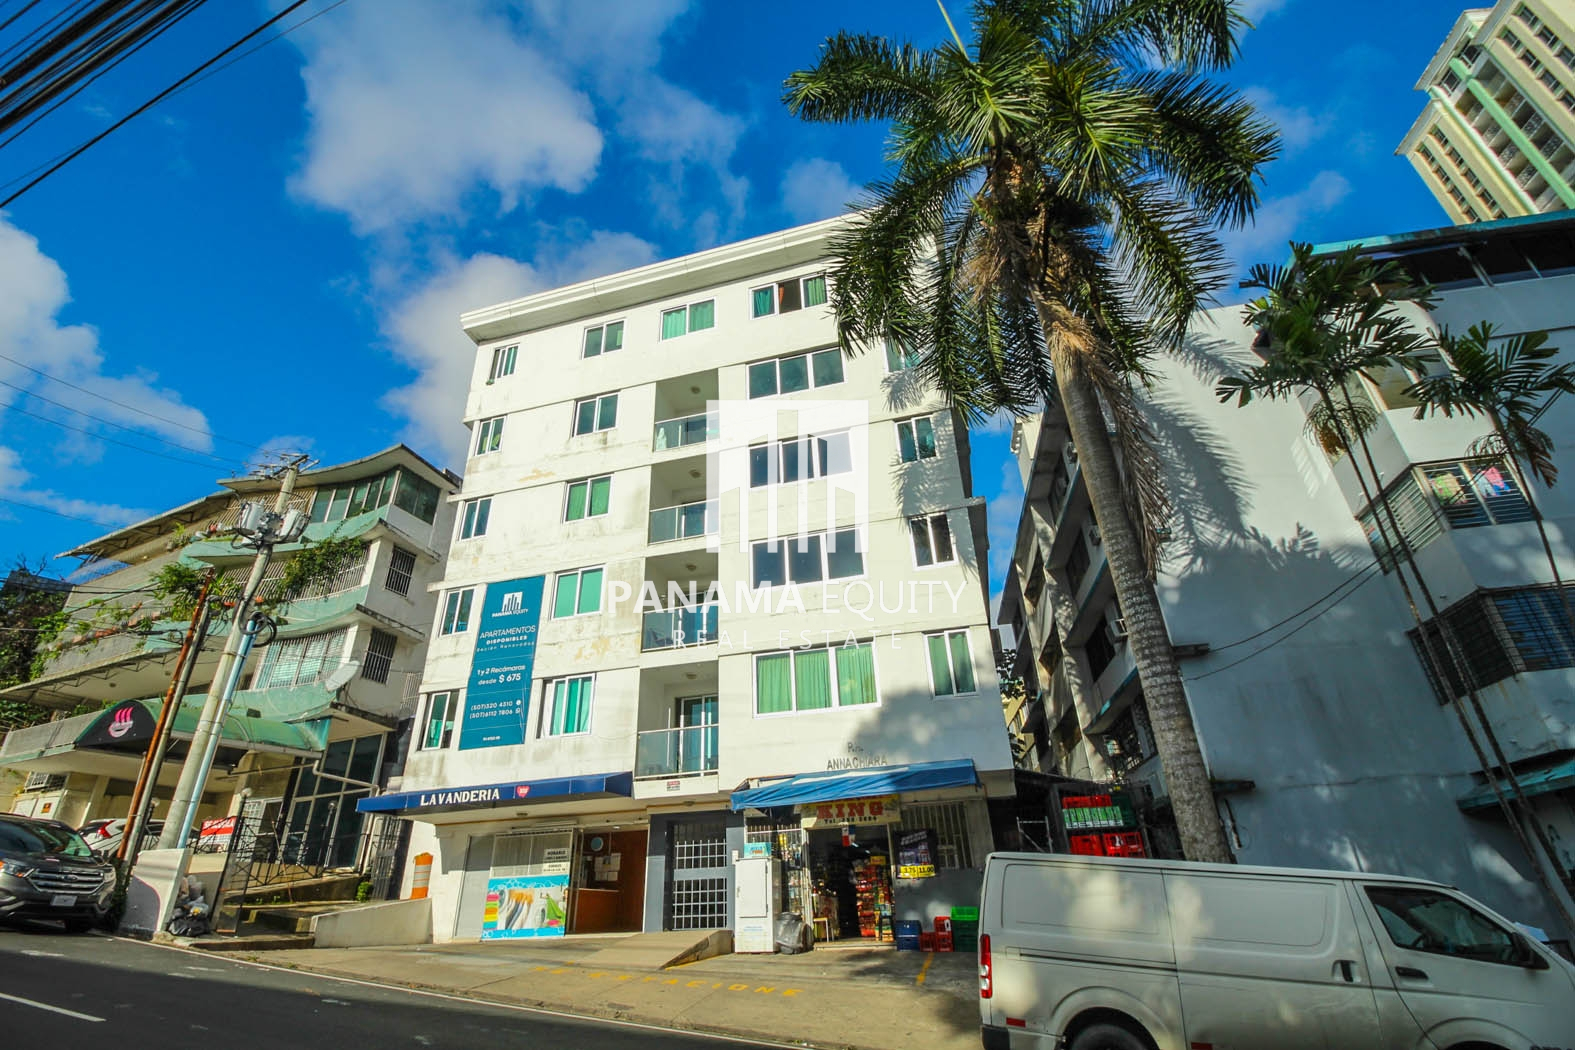 Large unfurnished apartment with a balcony for rent in Annachiara El Cangrejo